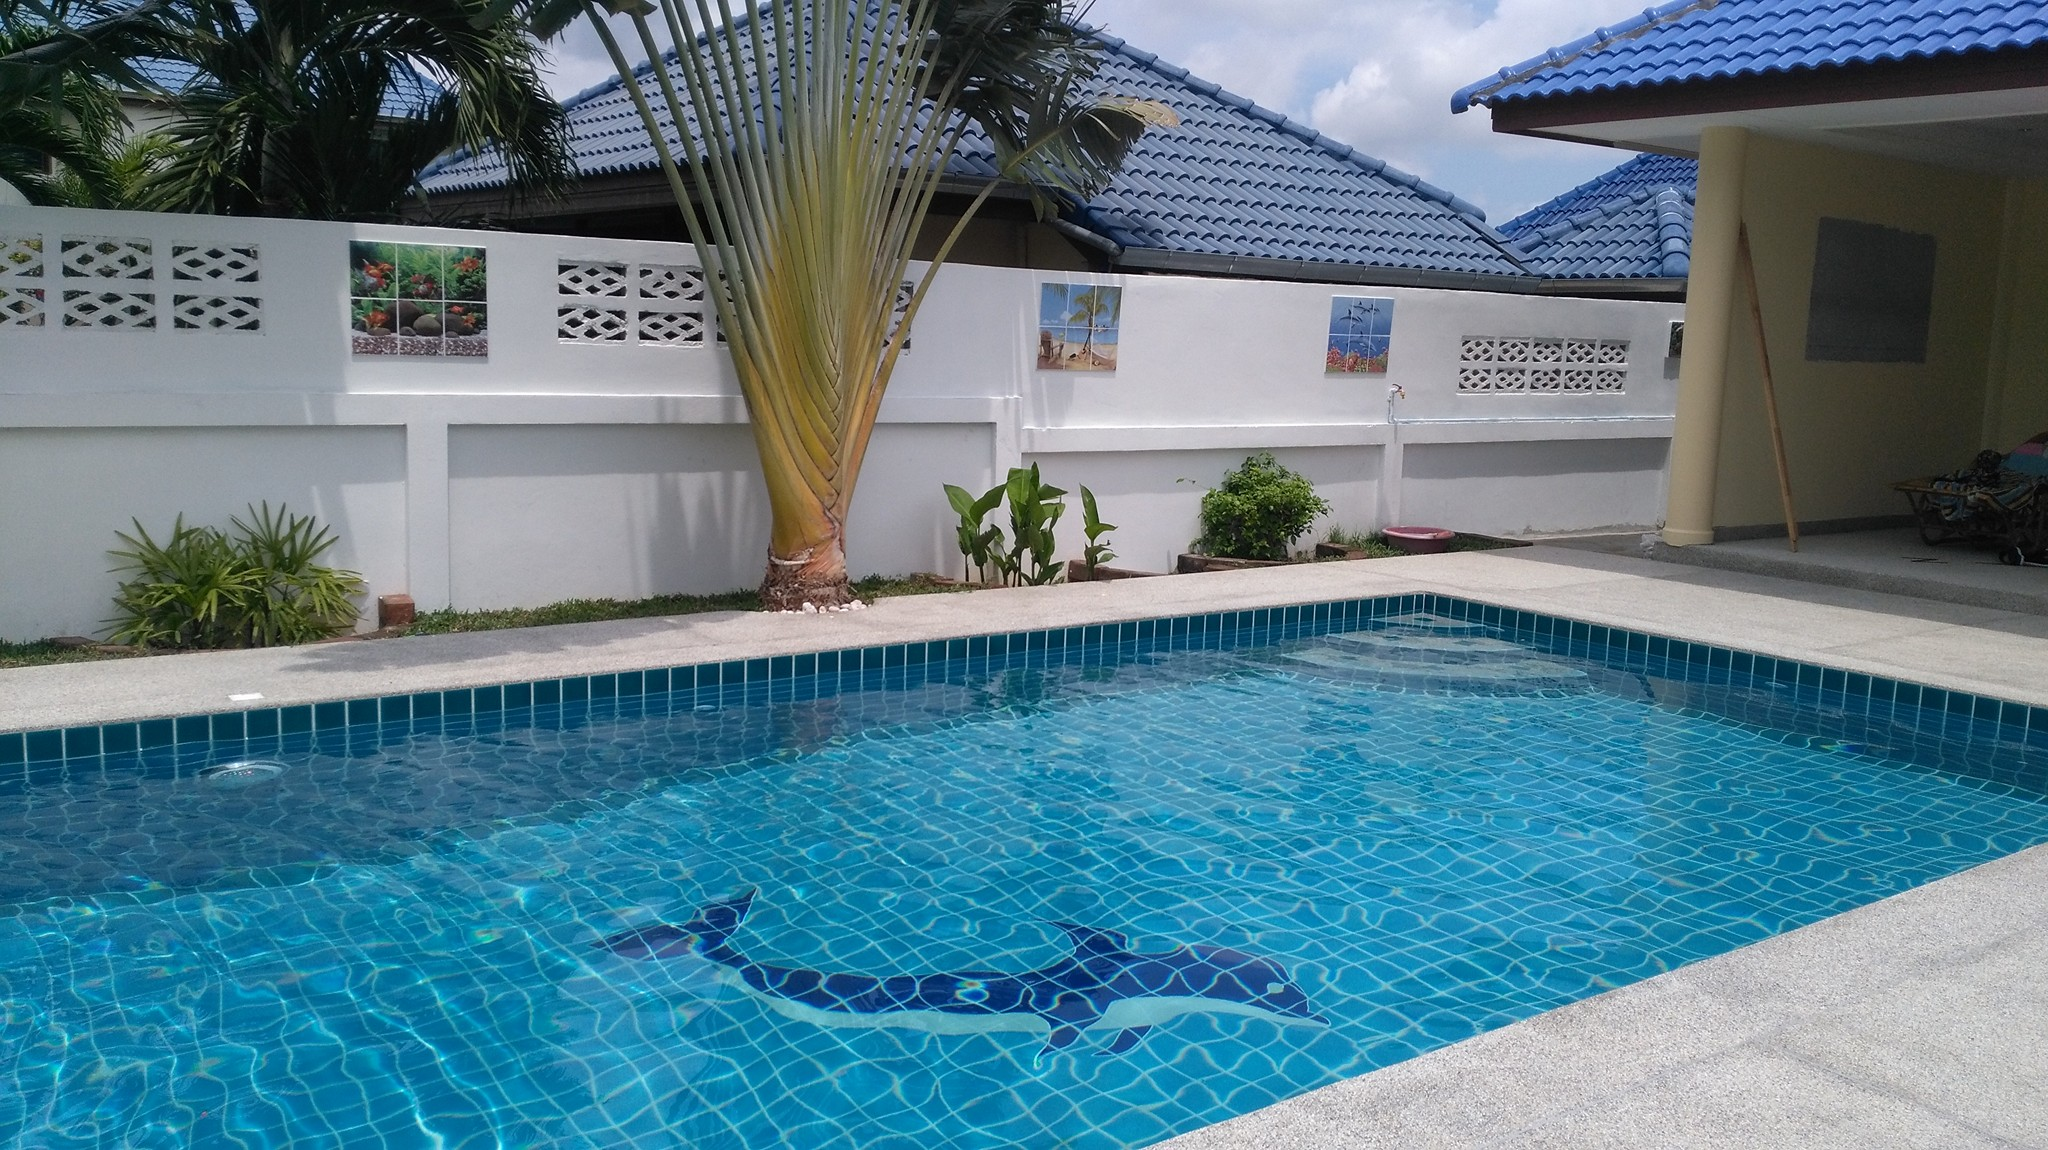 Luxury Swimming Pool In Bang Sarery Pobchck Garden Hill